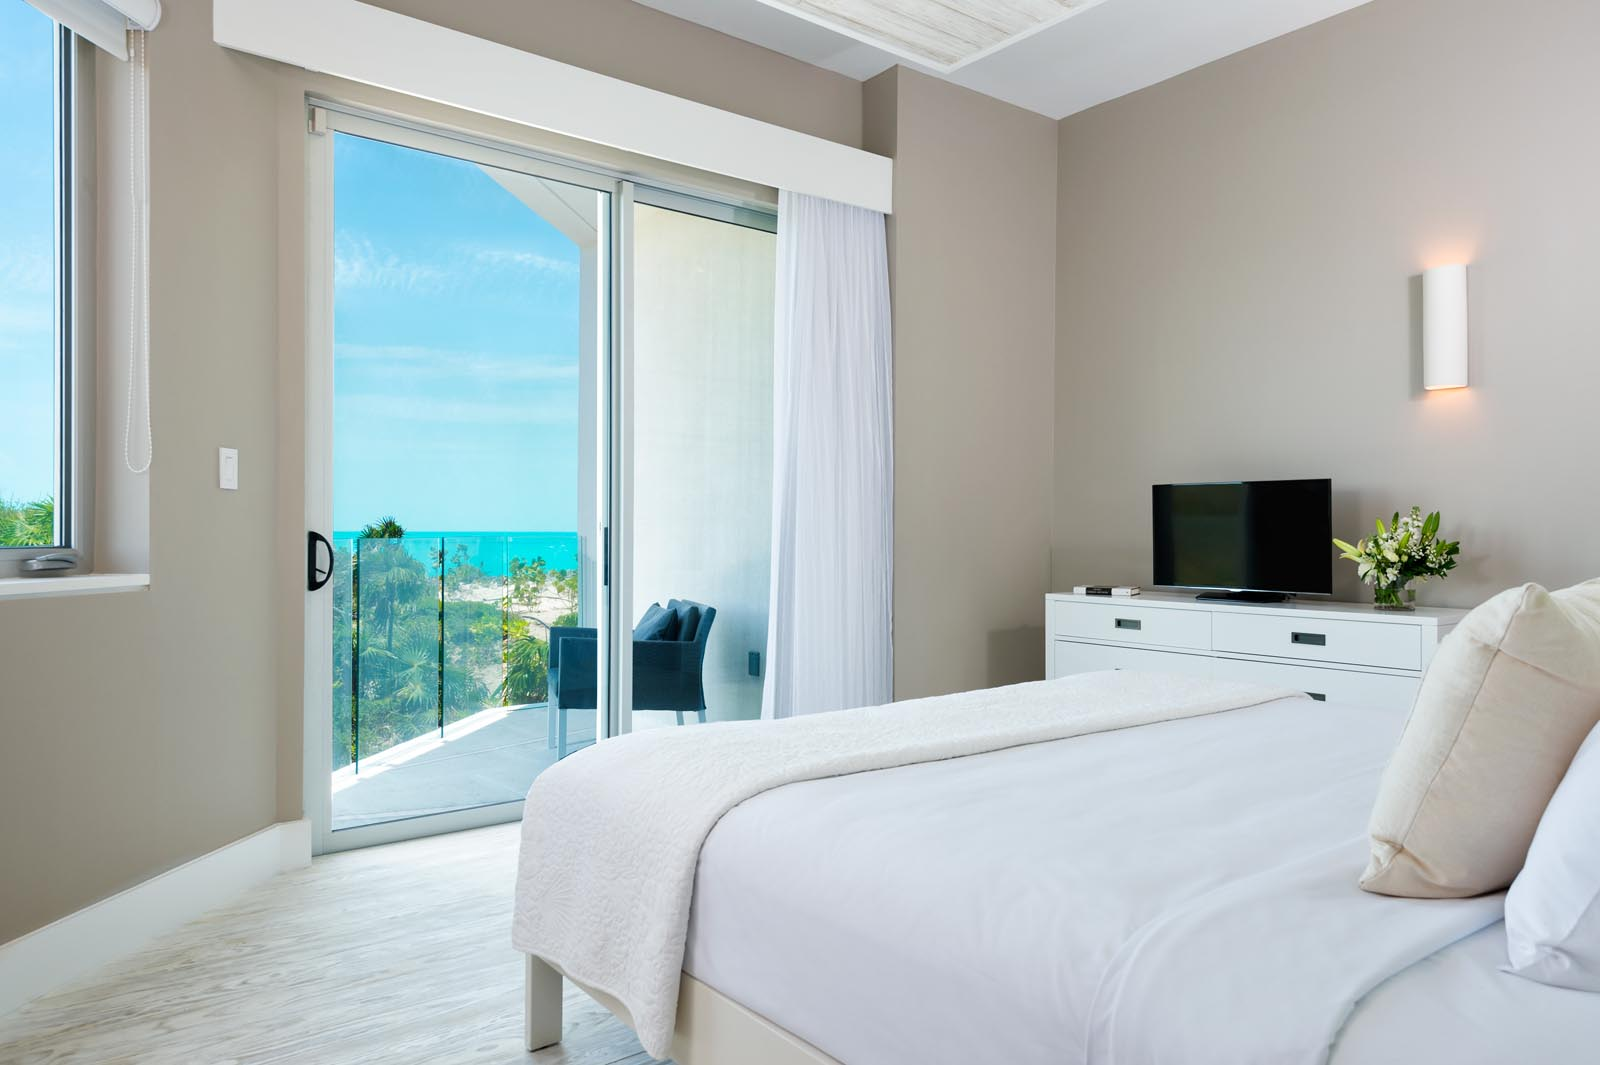 This Turks and Caicos holiday rental villa has a total of 5 beautiful bedrooms.